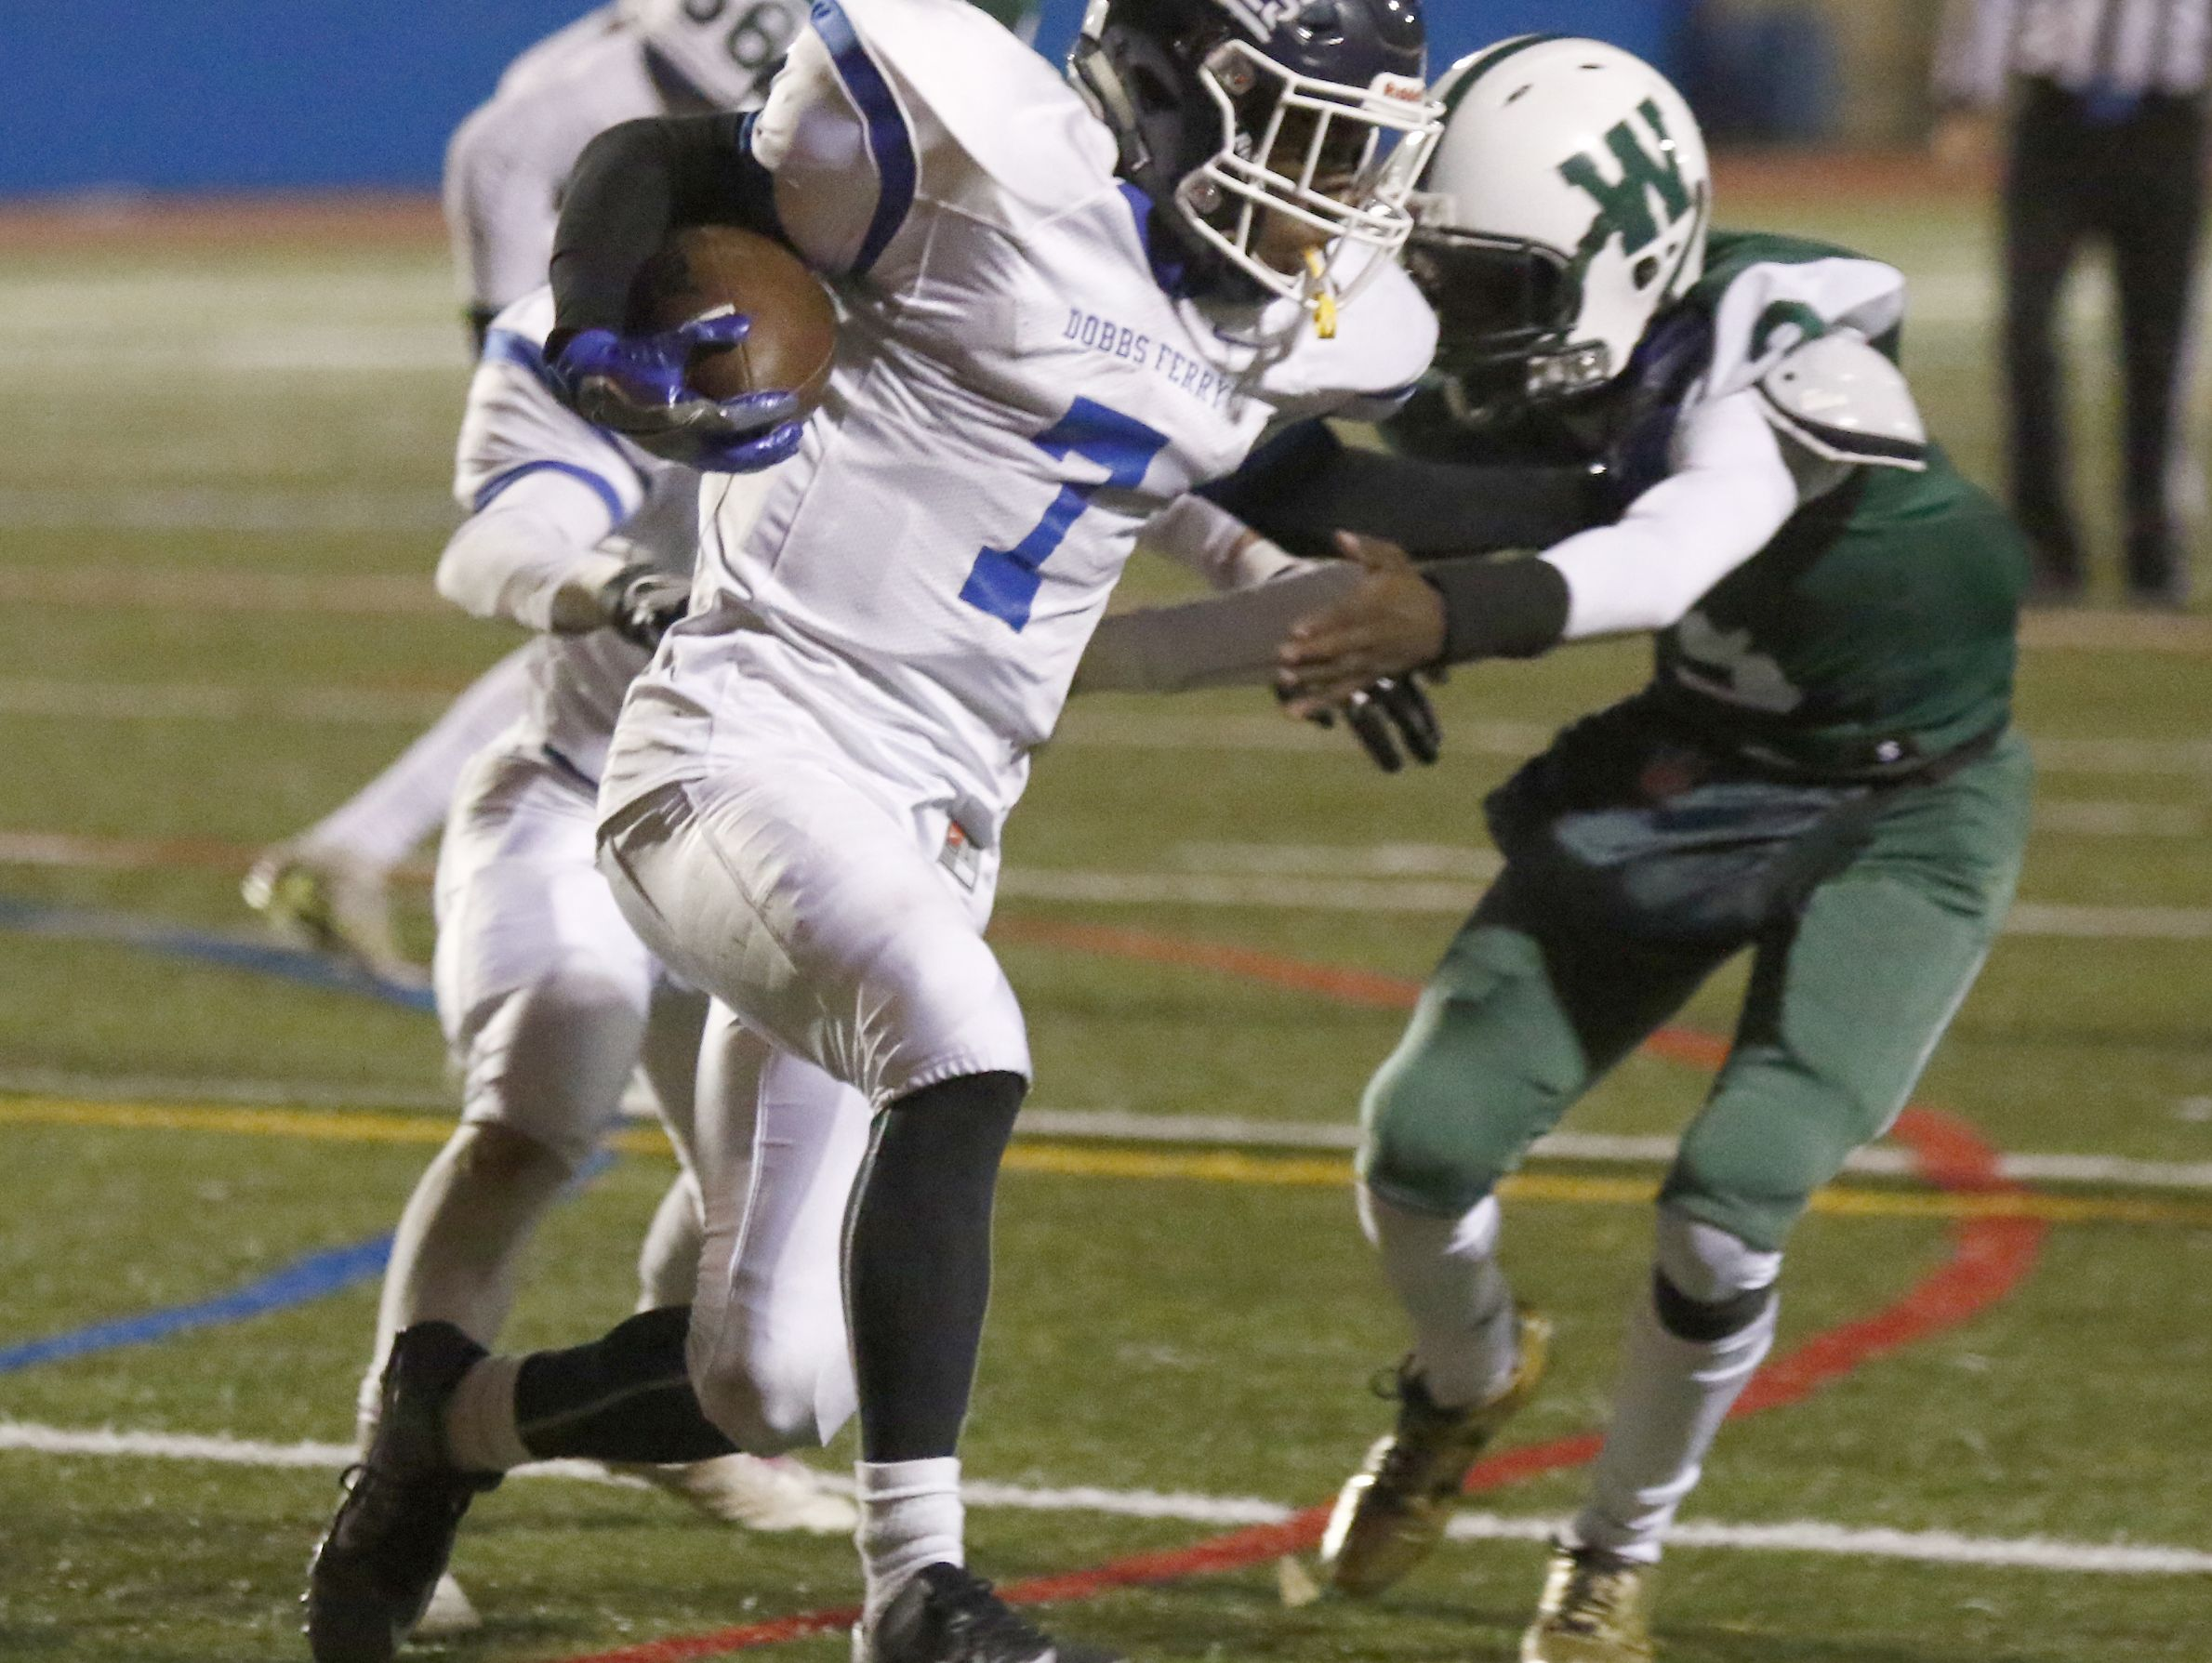 Dobbs Ferry's Najee Smith (7) with a carry during their 21-14 win over Woodlands in the Section 1 Class C championship football game at Mahopac High School on Friday, November 4, 2016.